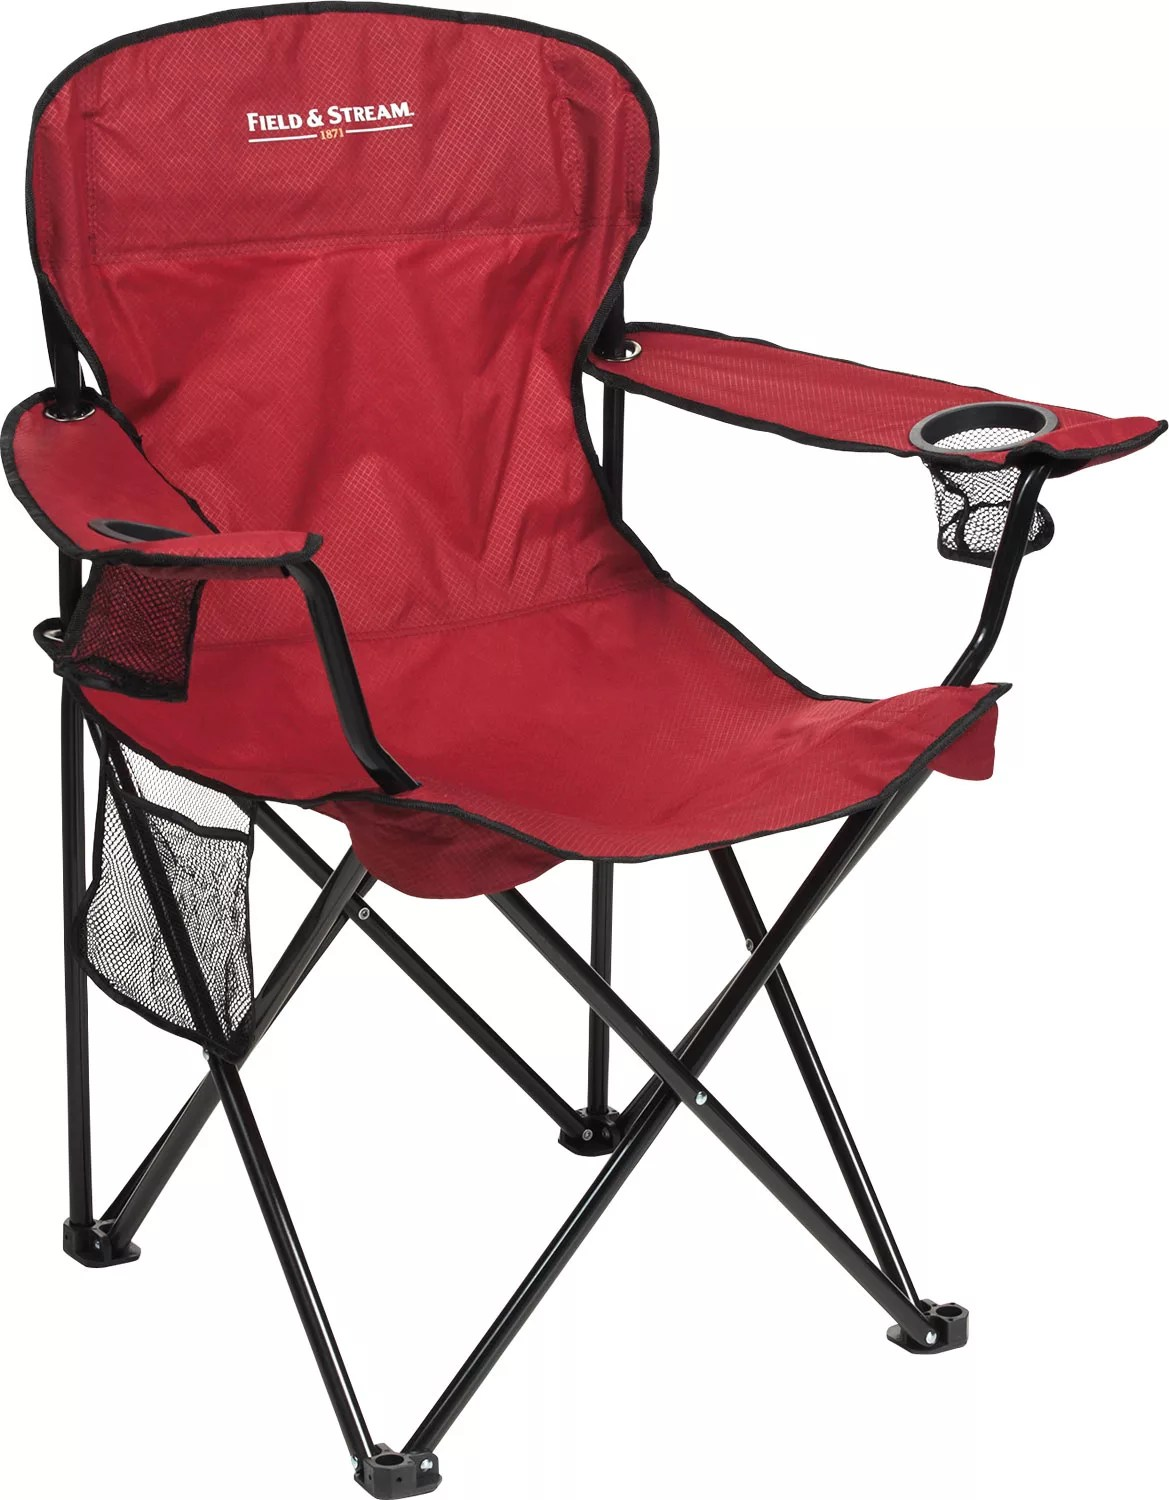 tall fishing chair hanging urban ladder camping chairs folding best price guarantee at dick s product image field stream camp